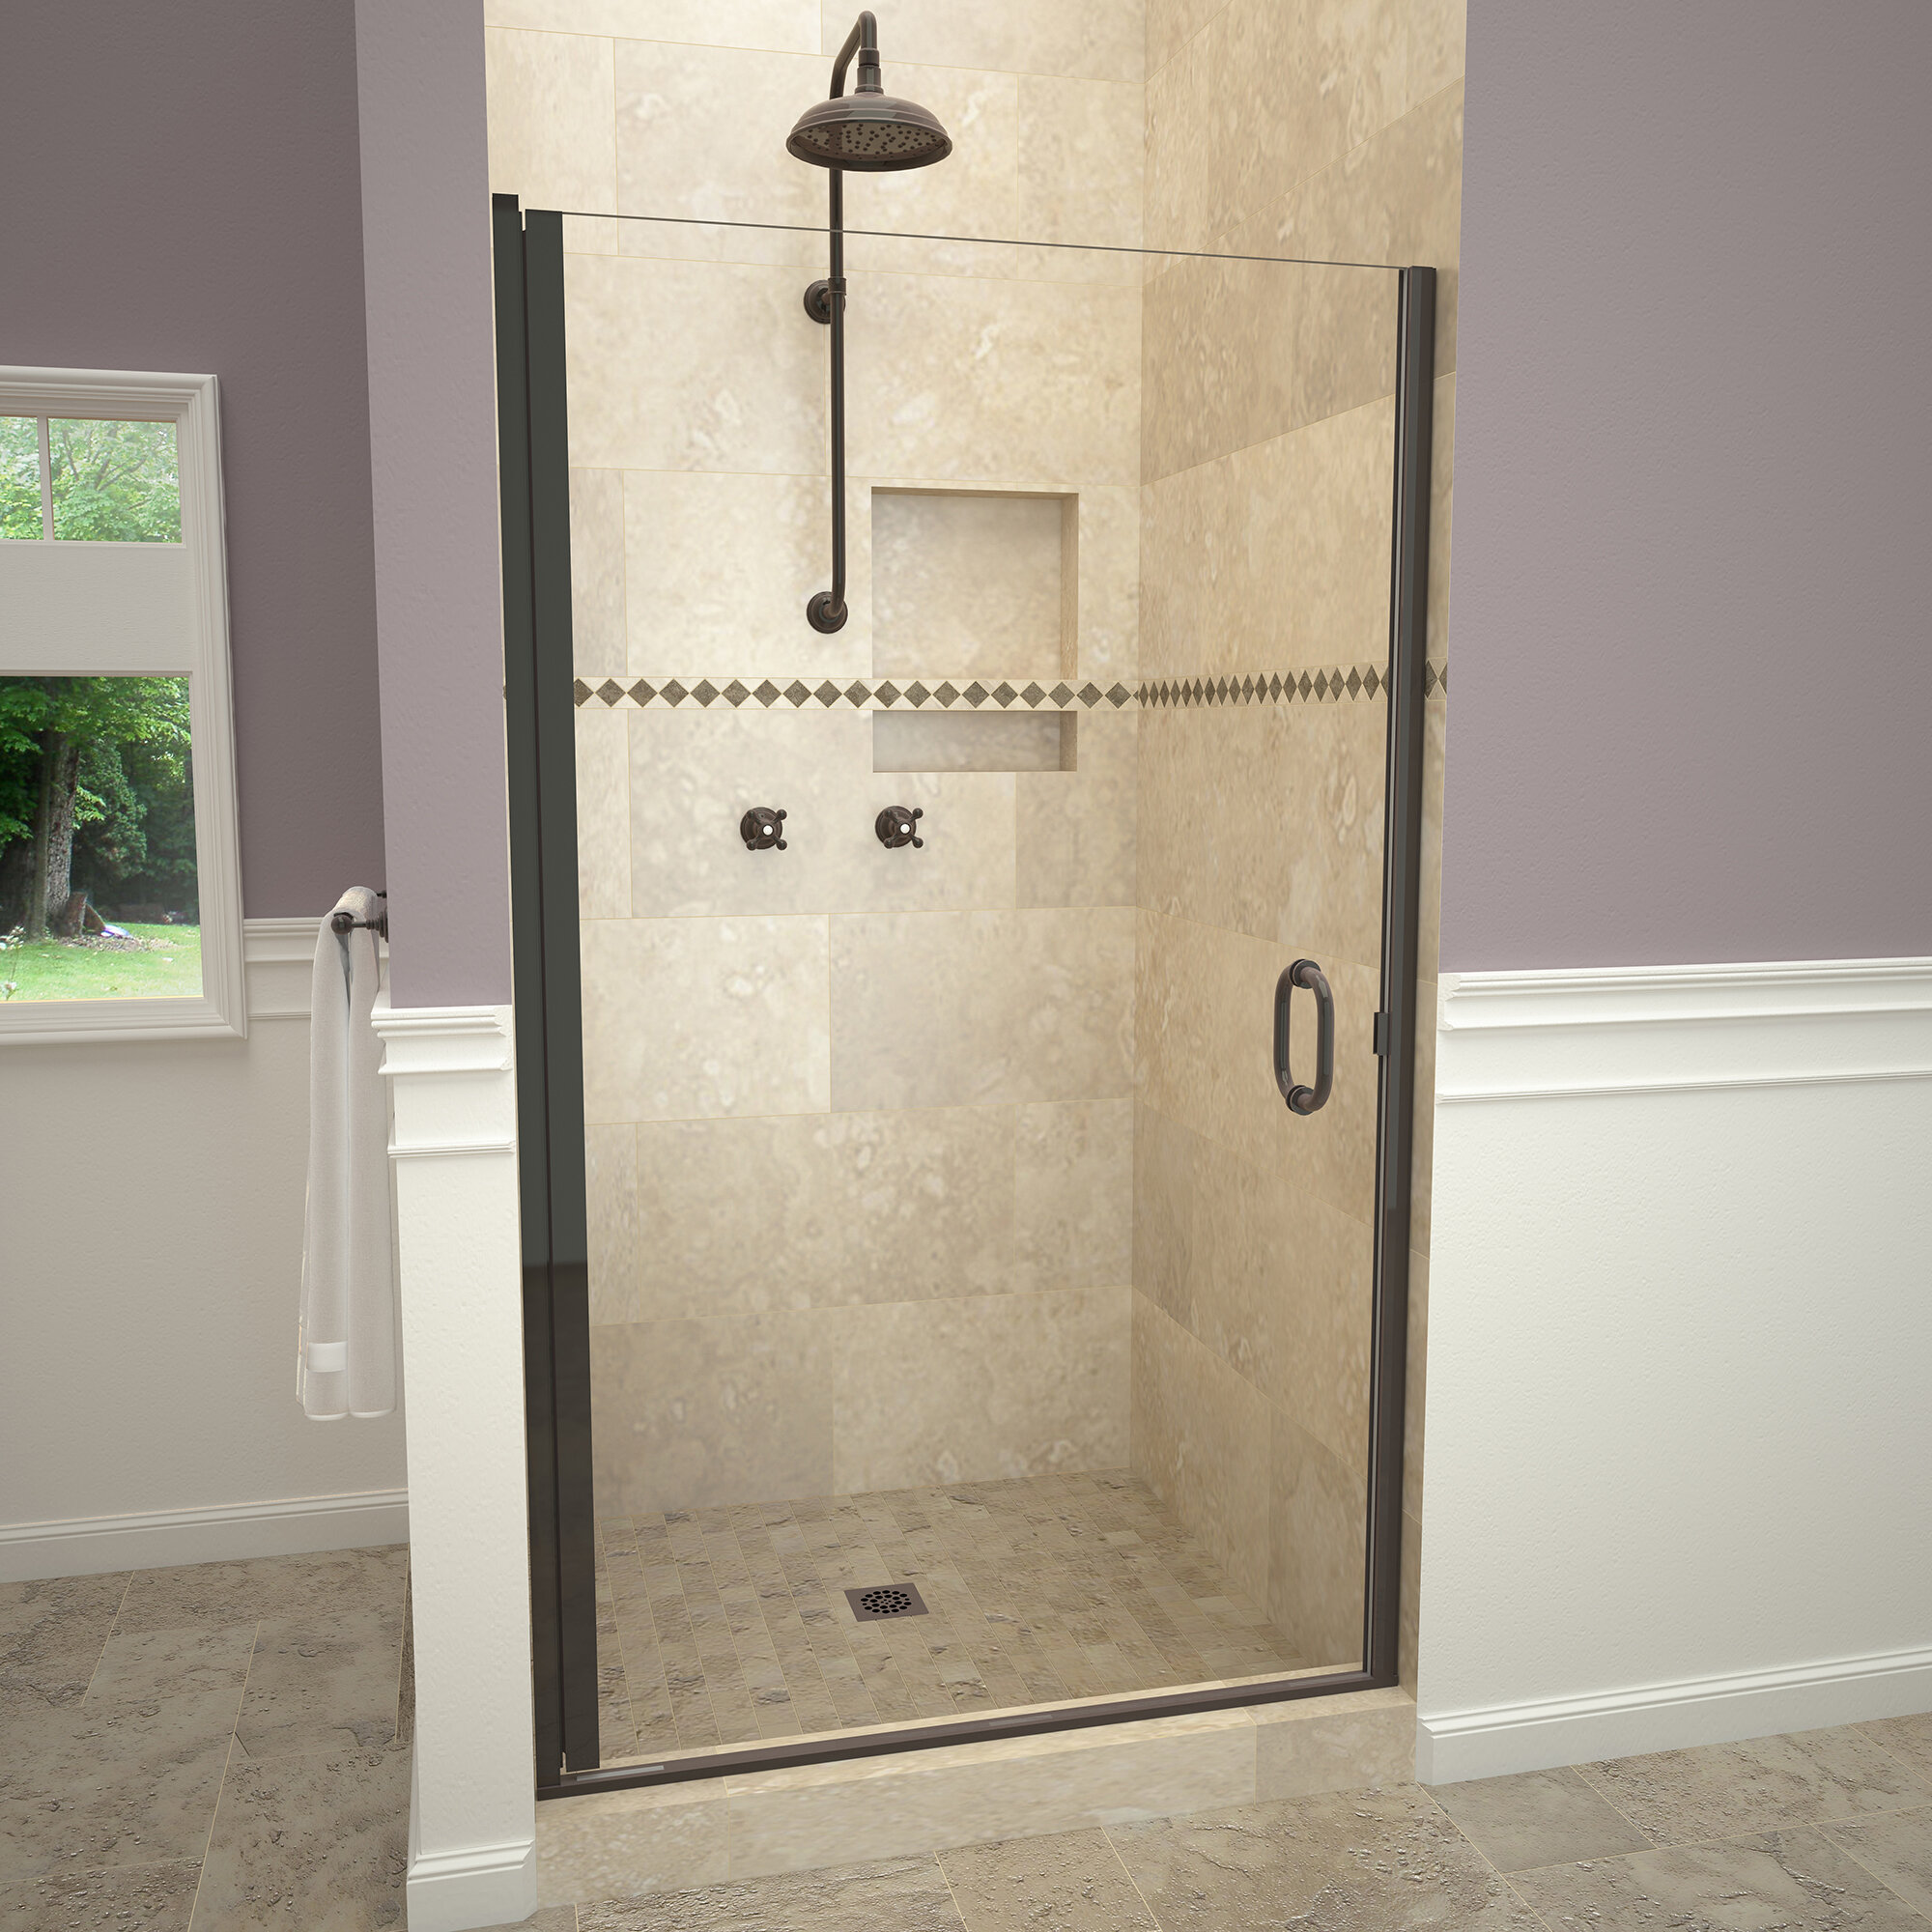 Details About 1200 Series Swing 33 X 72 Pivot Semi Frameless Shower Door Oil Rubbed Bronze